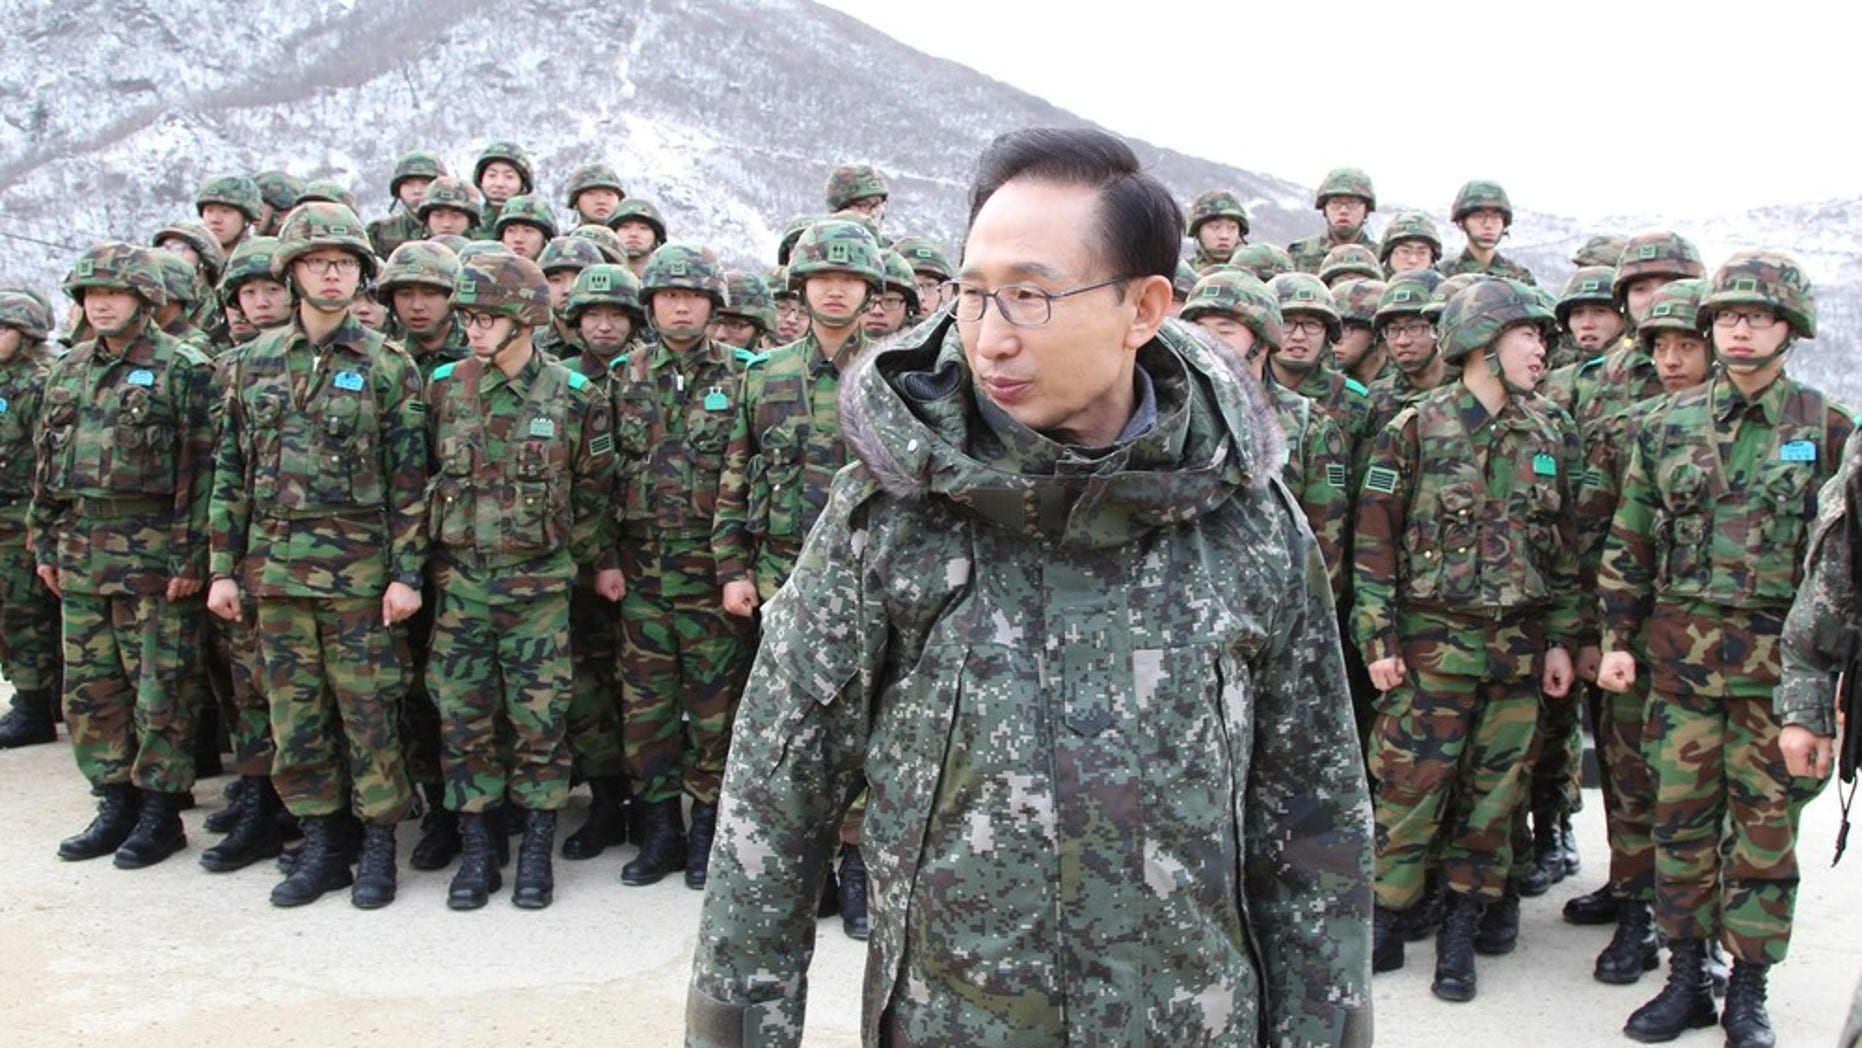 Dec. 23, 2010: South Korean President Lee Myung-bak leaves after taking photographs with soldiers during his visit to a military observation post of the front-line unit in the demilitarized zone in Yanggu, far northeast of Seoul.